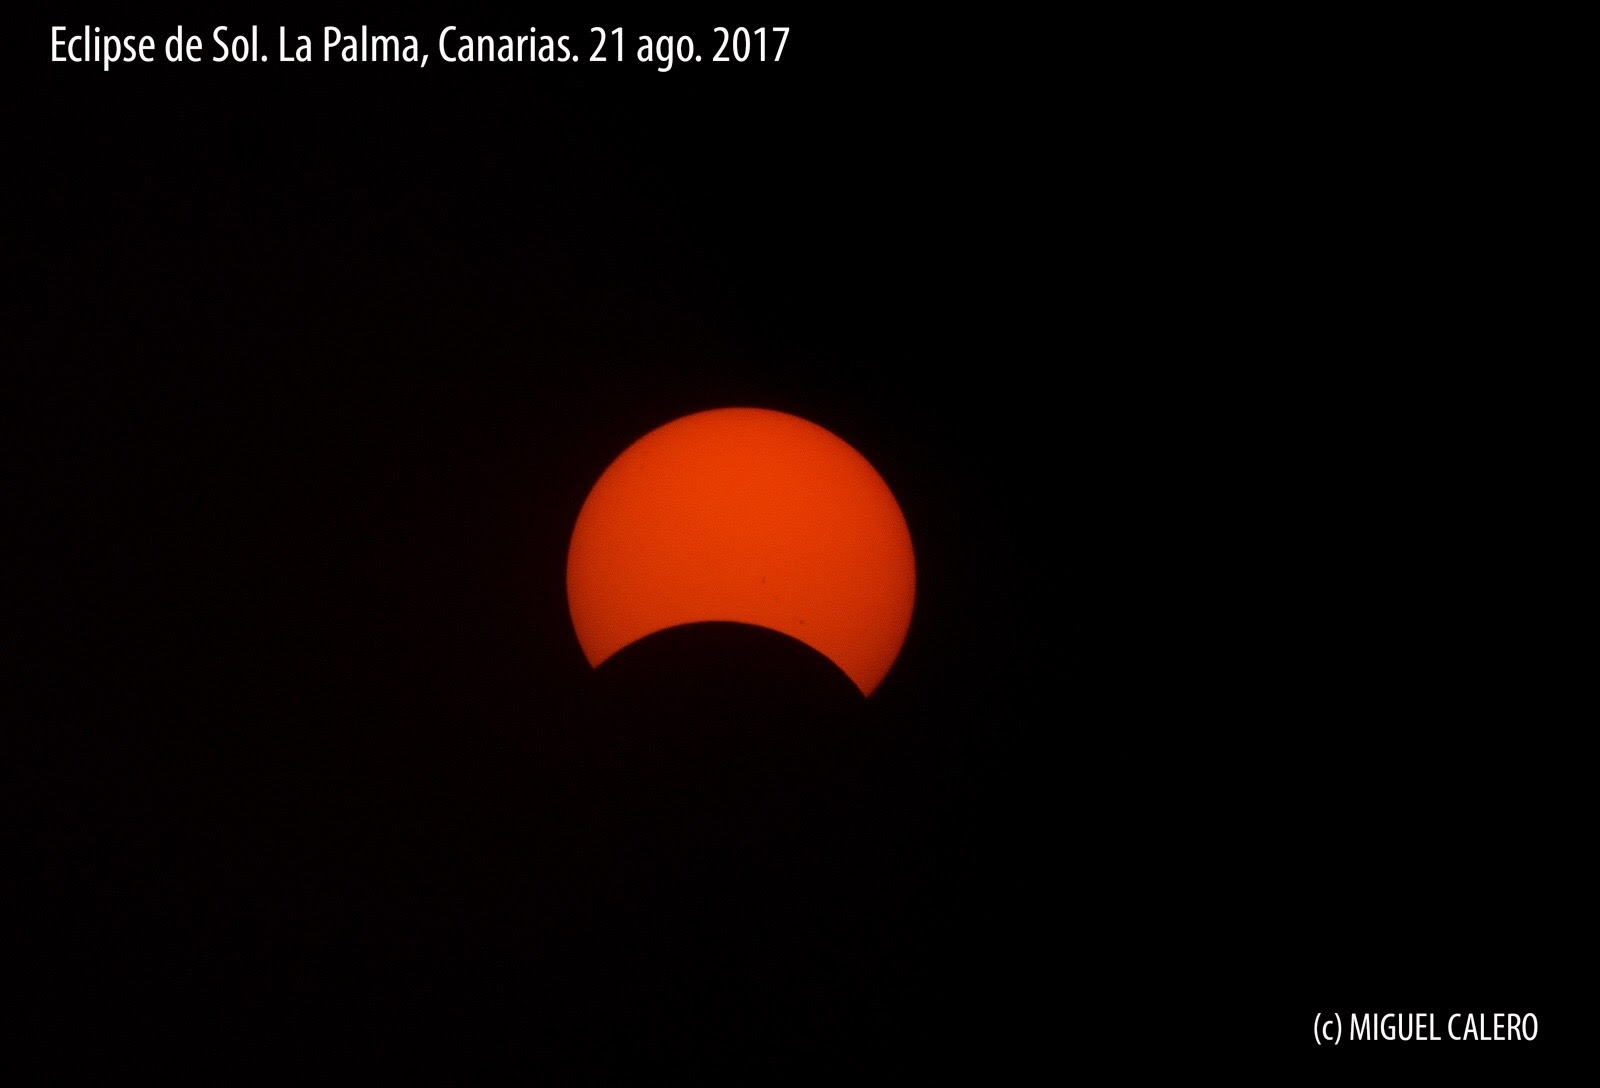 ECLIPSE DE SOL 2017